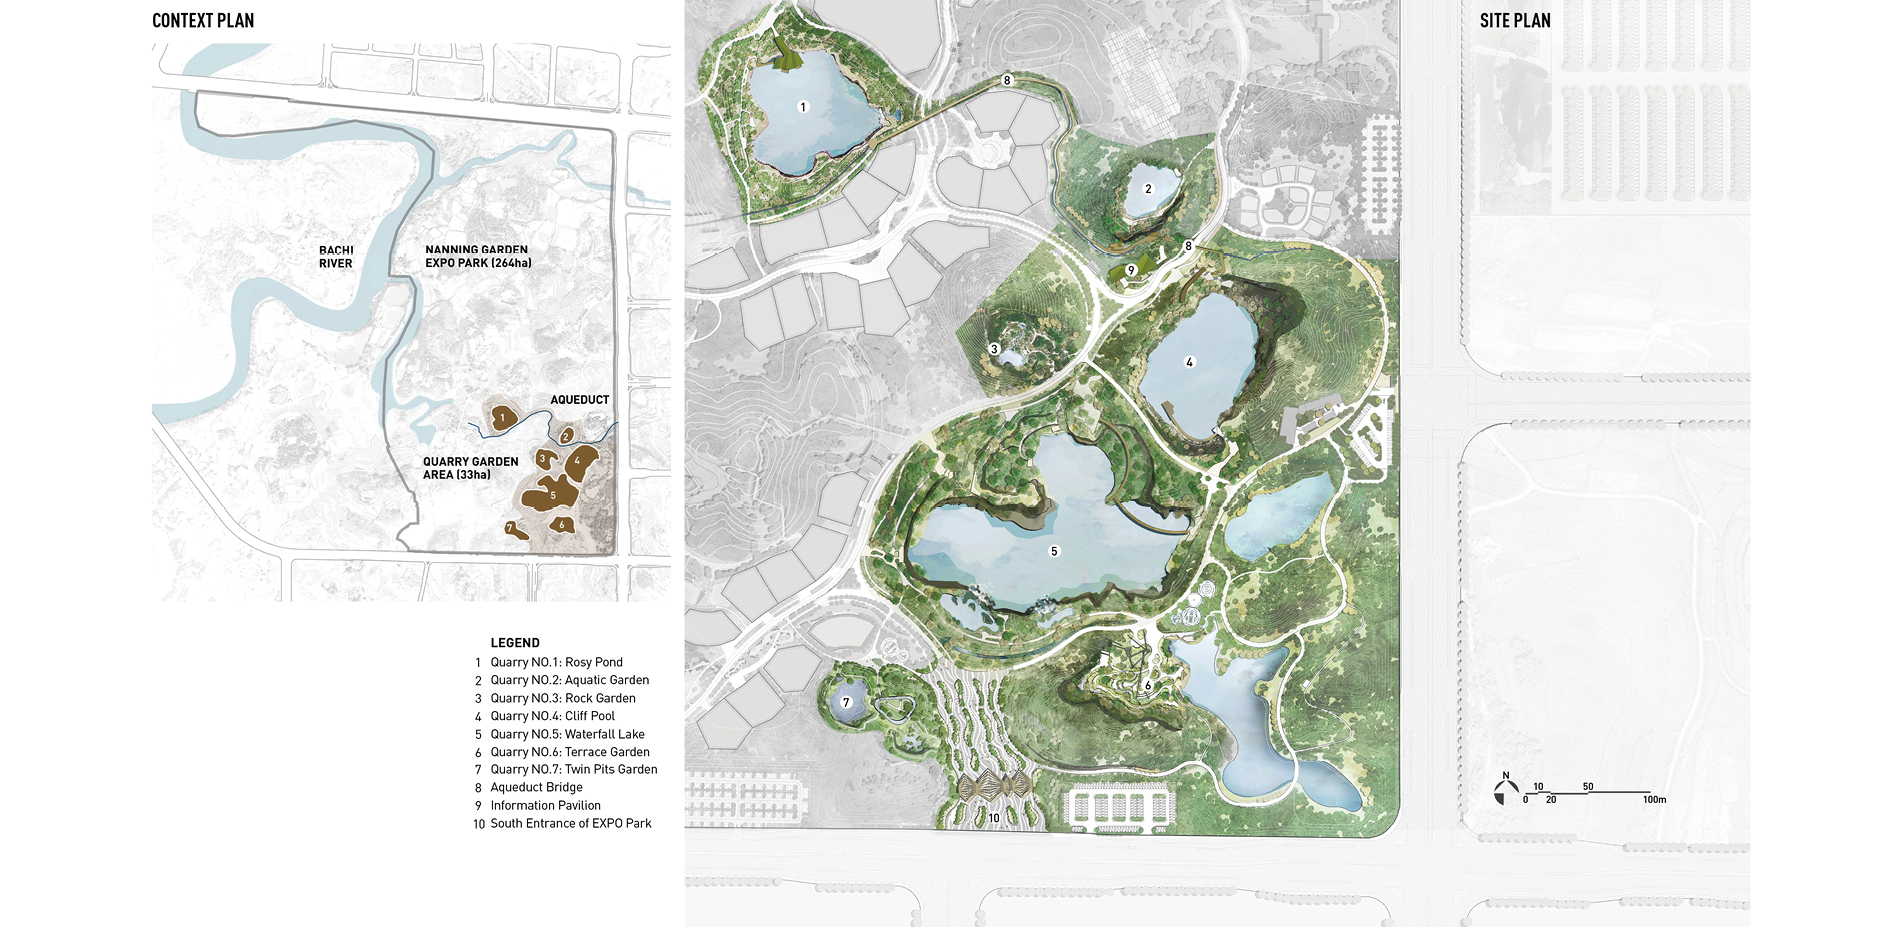 Context Plan and Site Plan